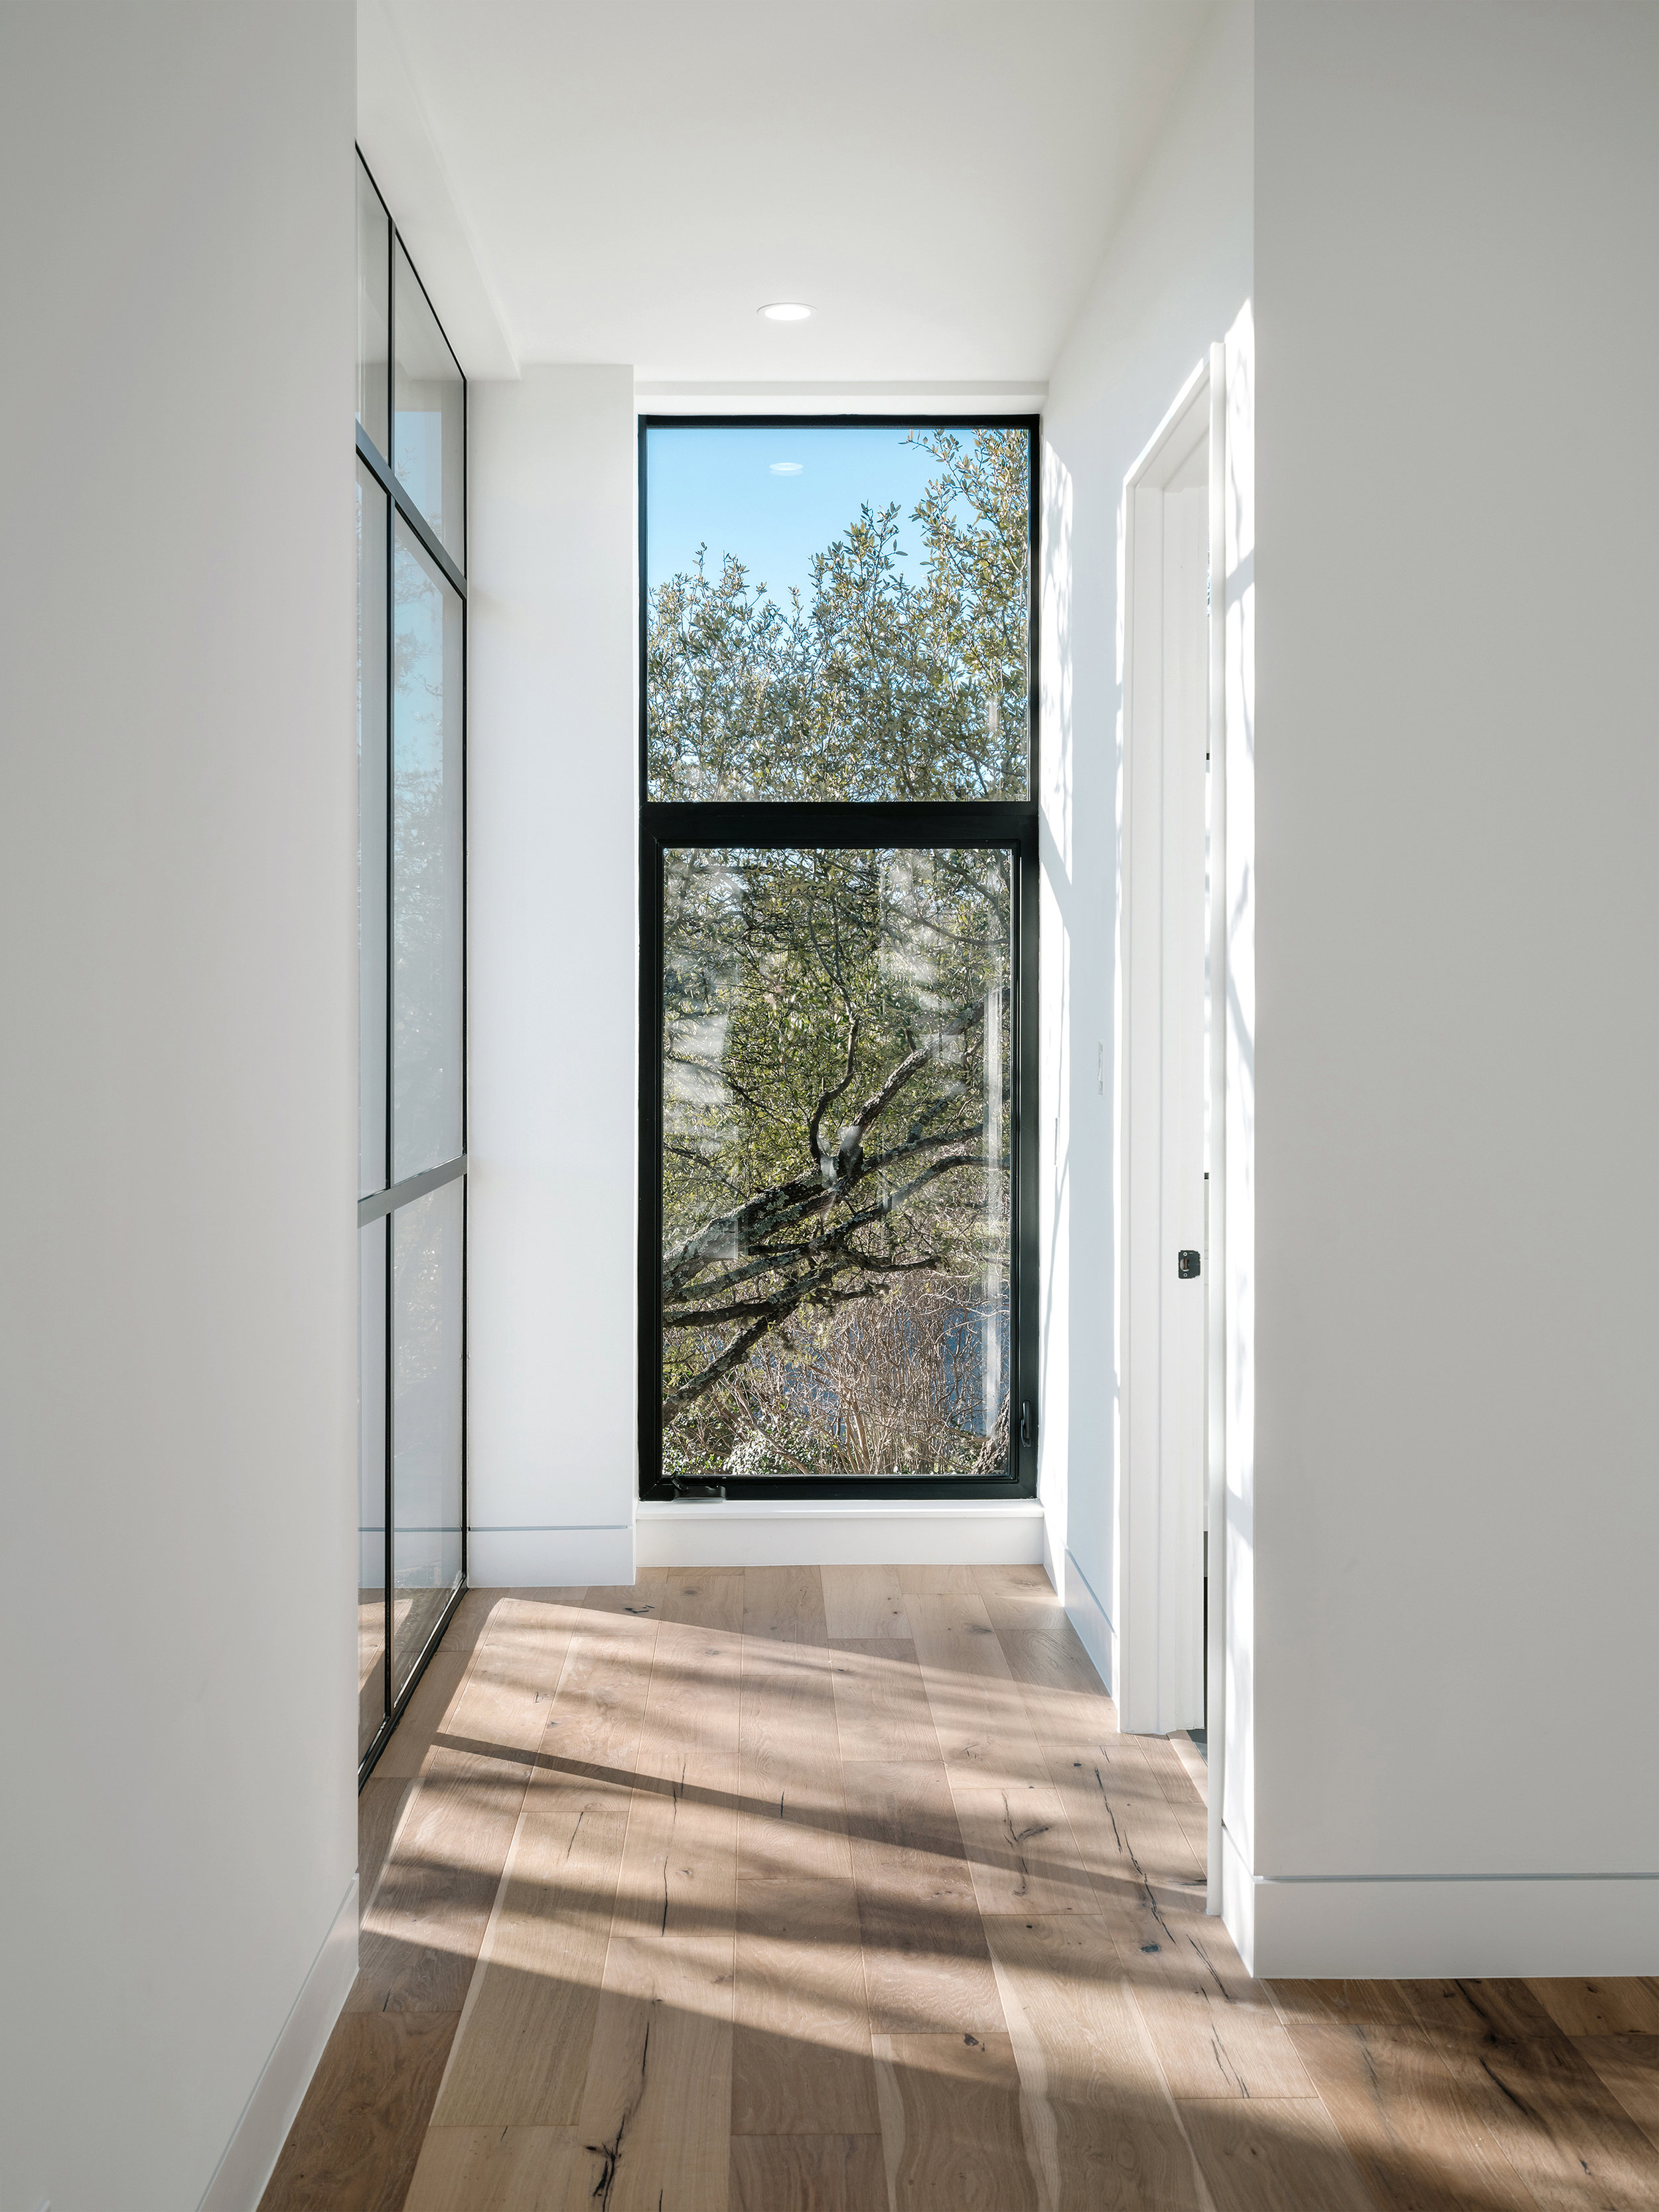 19 Allotted Space House by Matt Fajkus Architecture. Photo by Chase Daniel.jpg